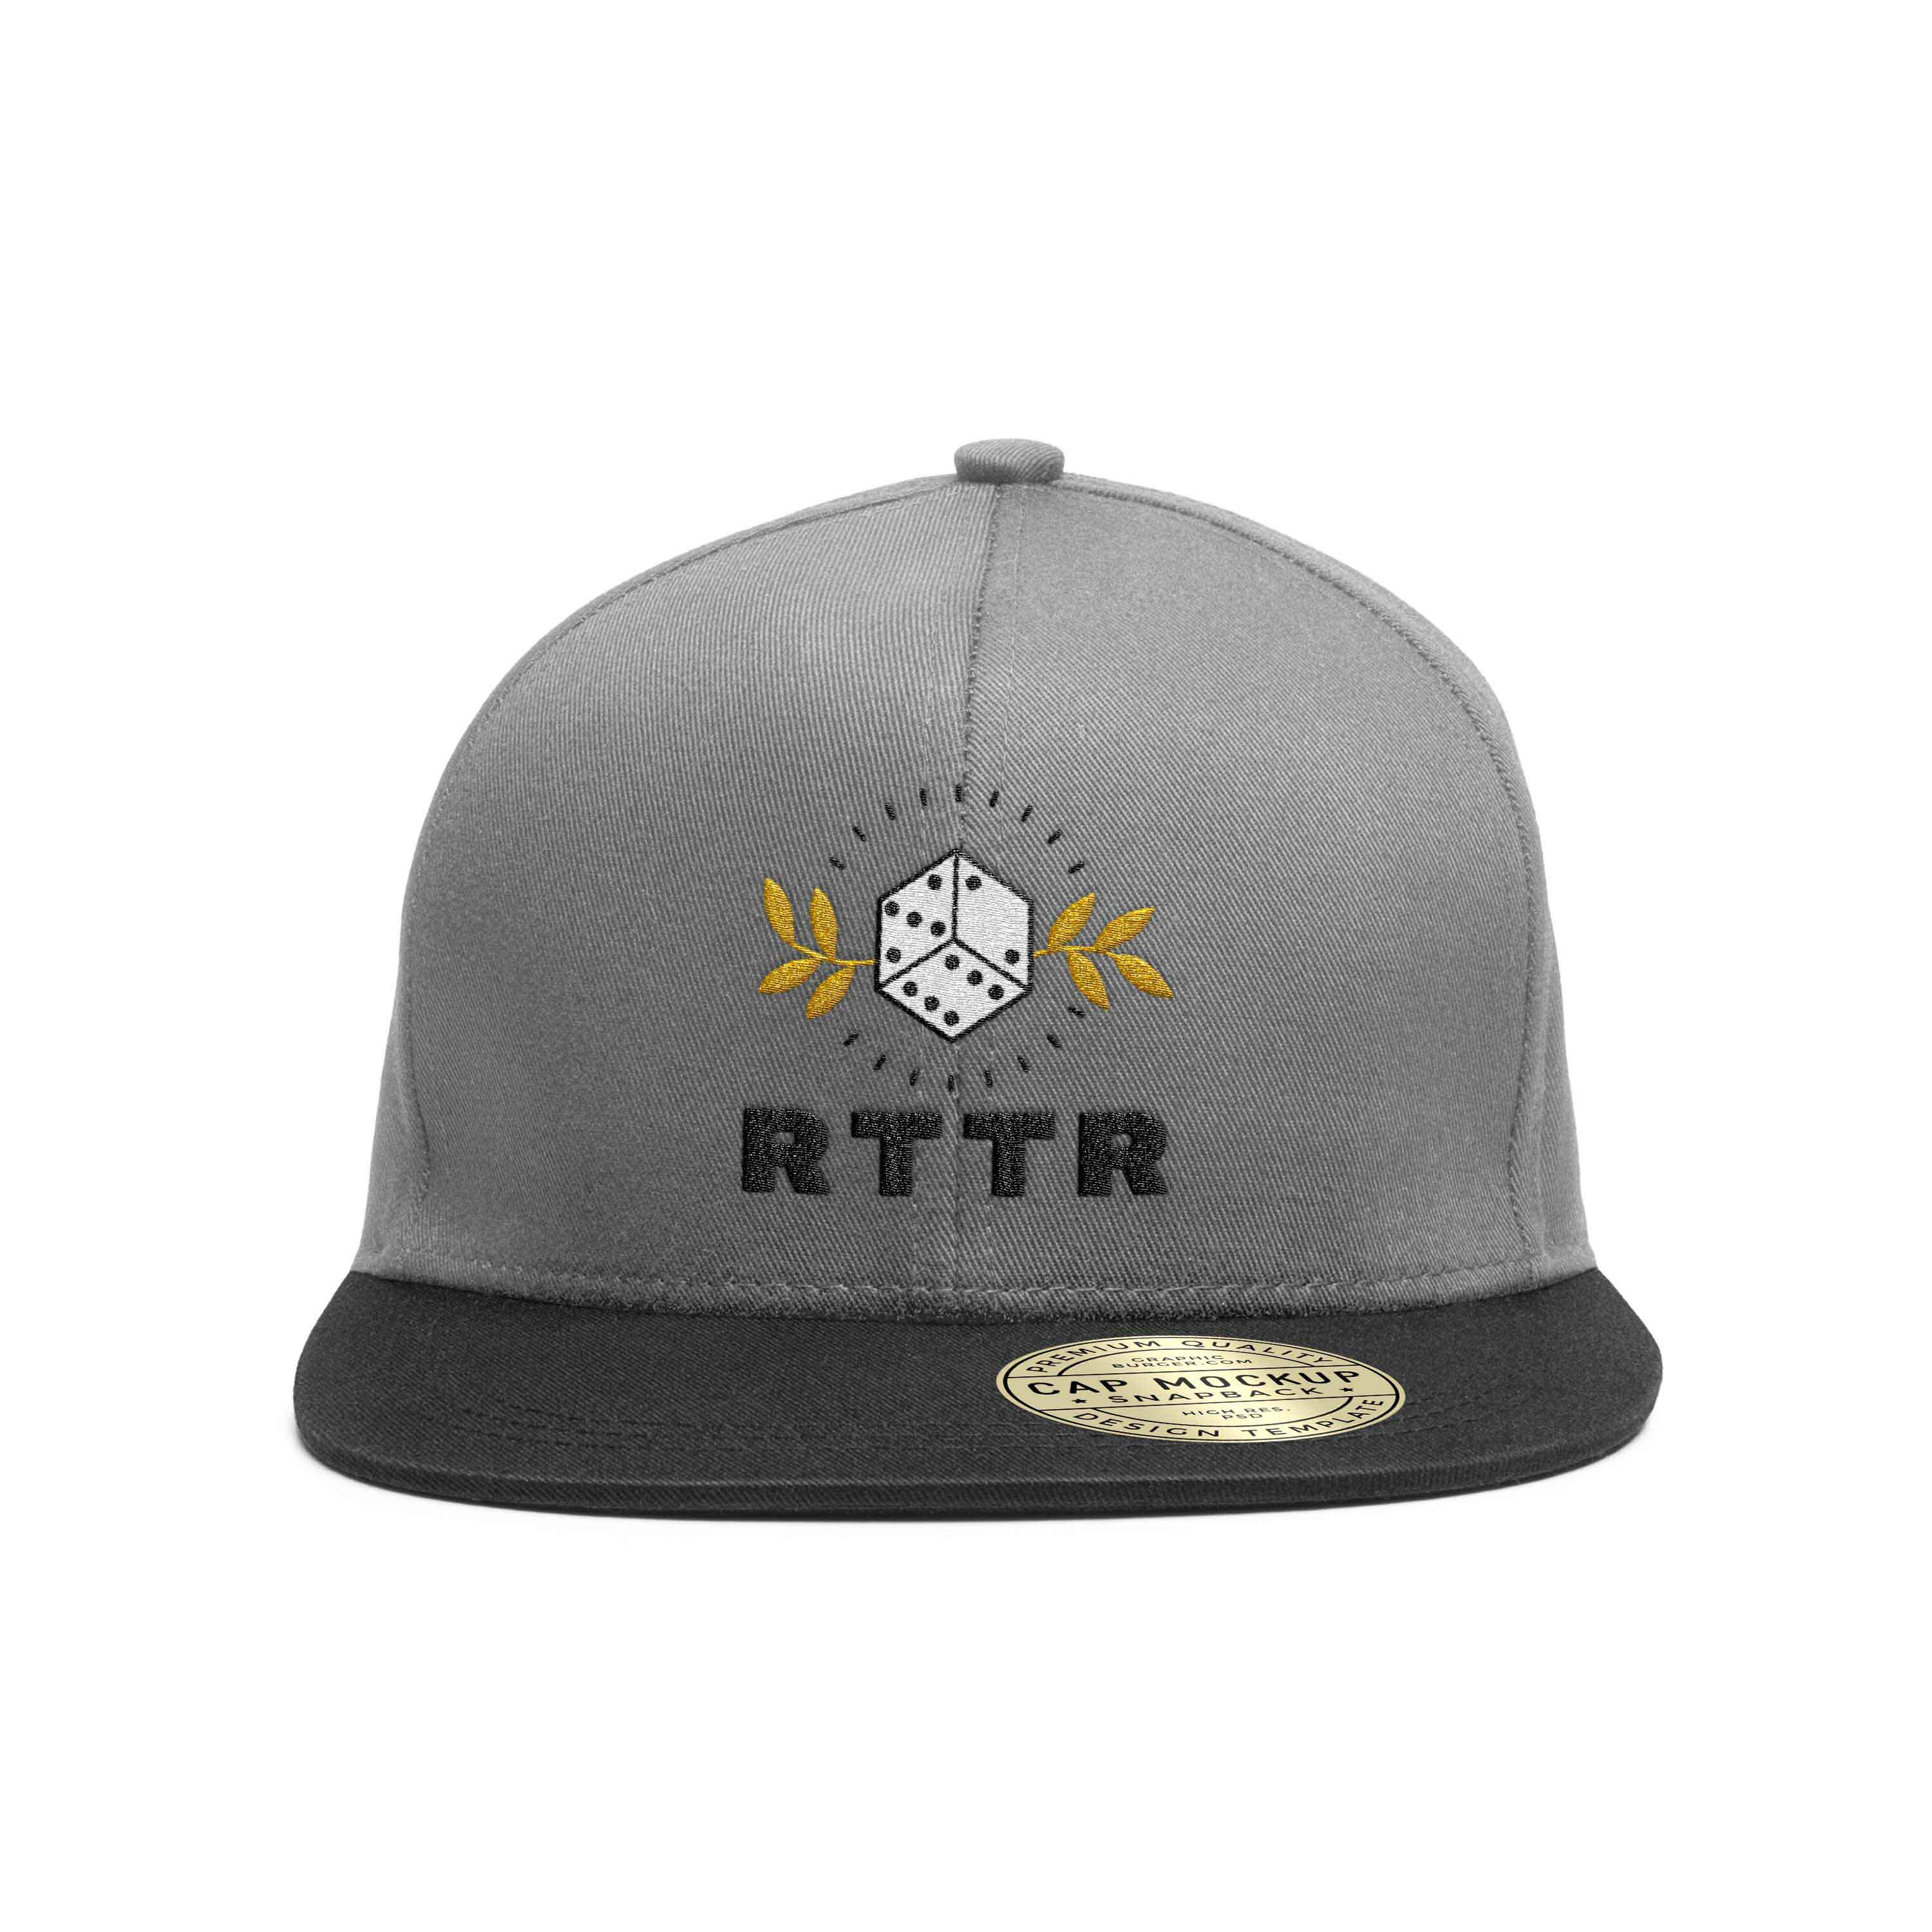 Image of the new RTTR logo applied to a hat